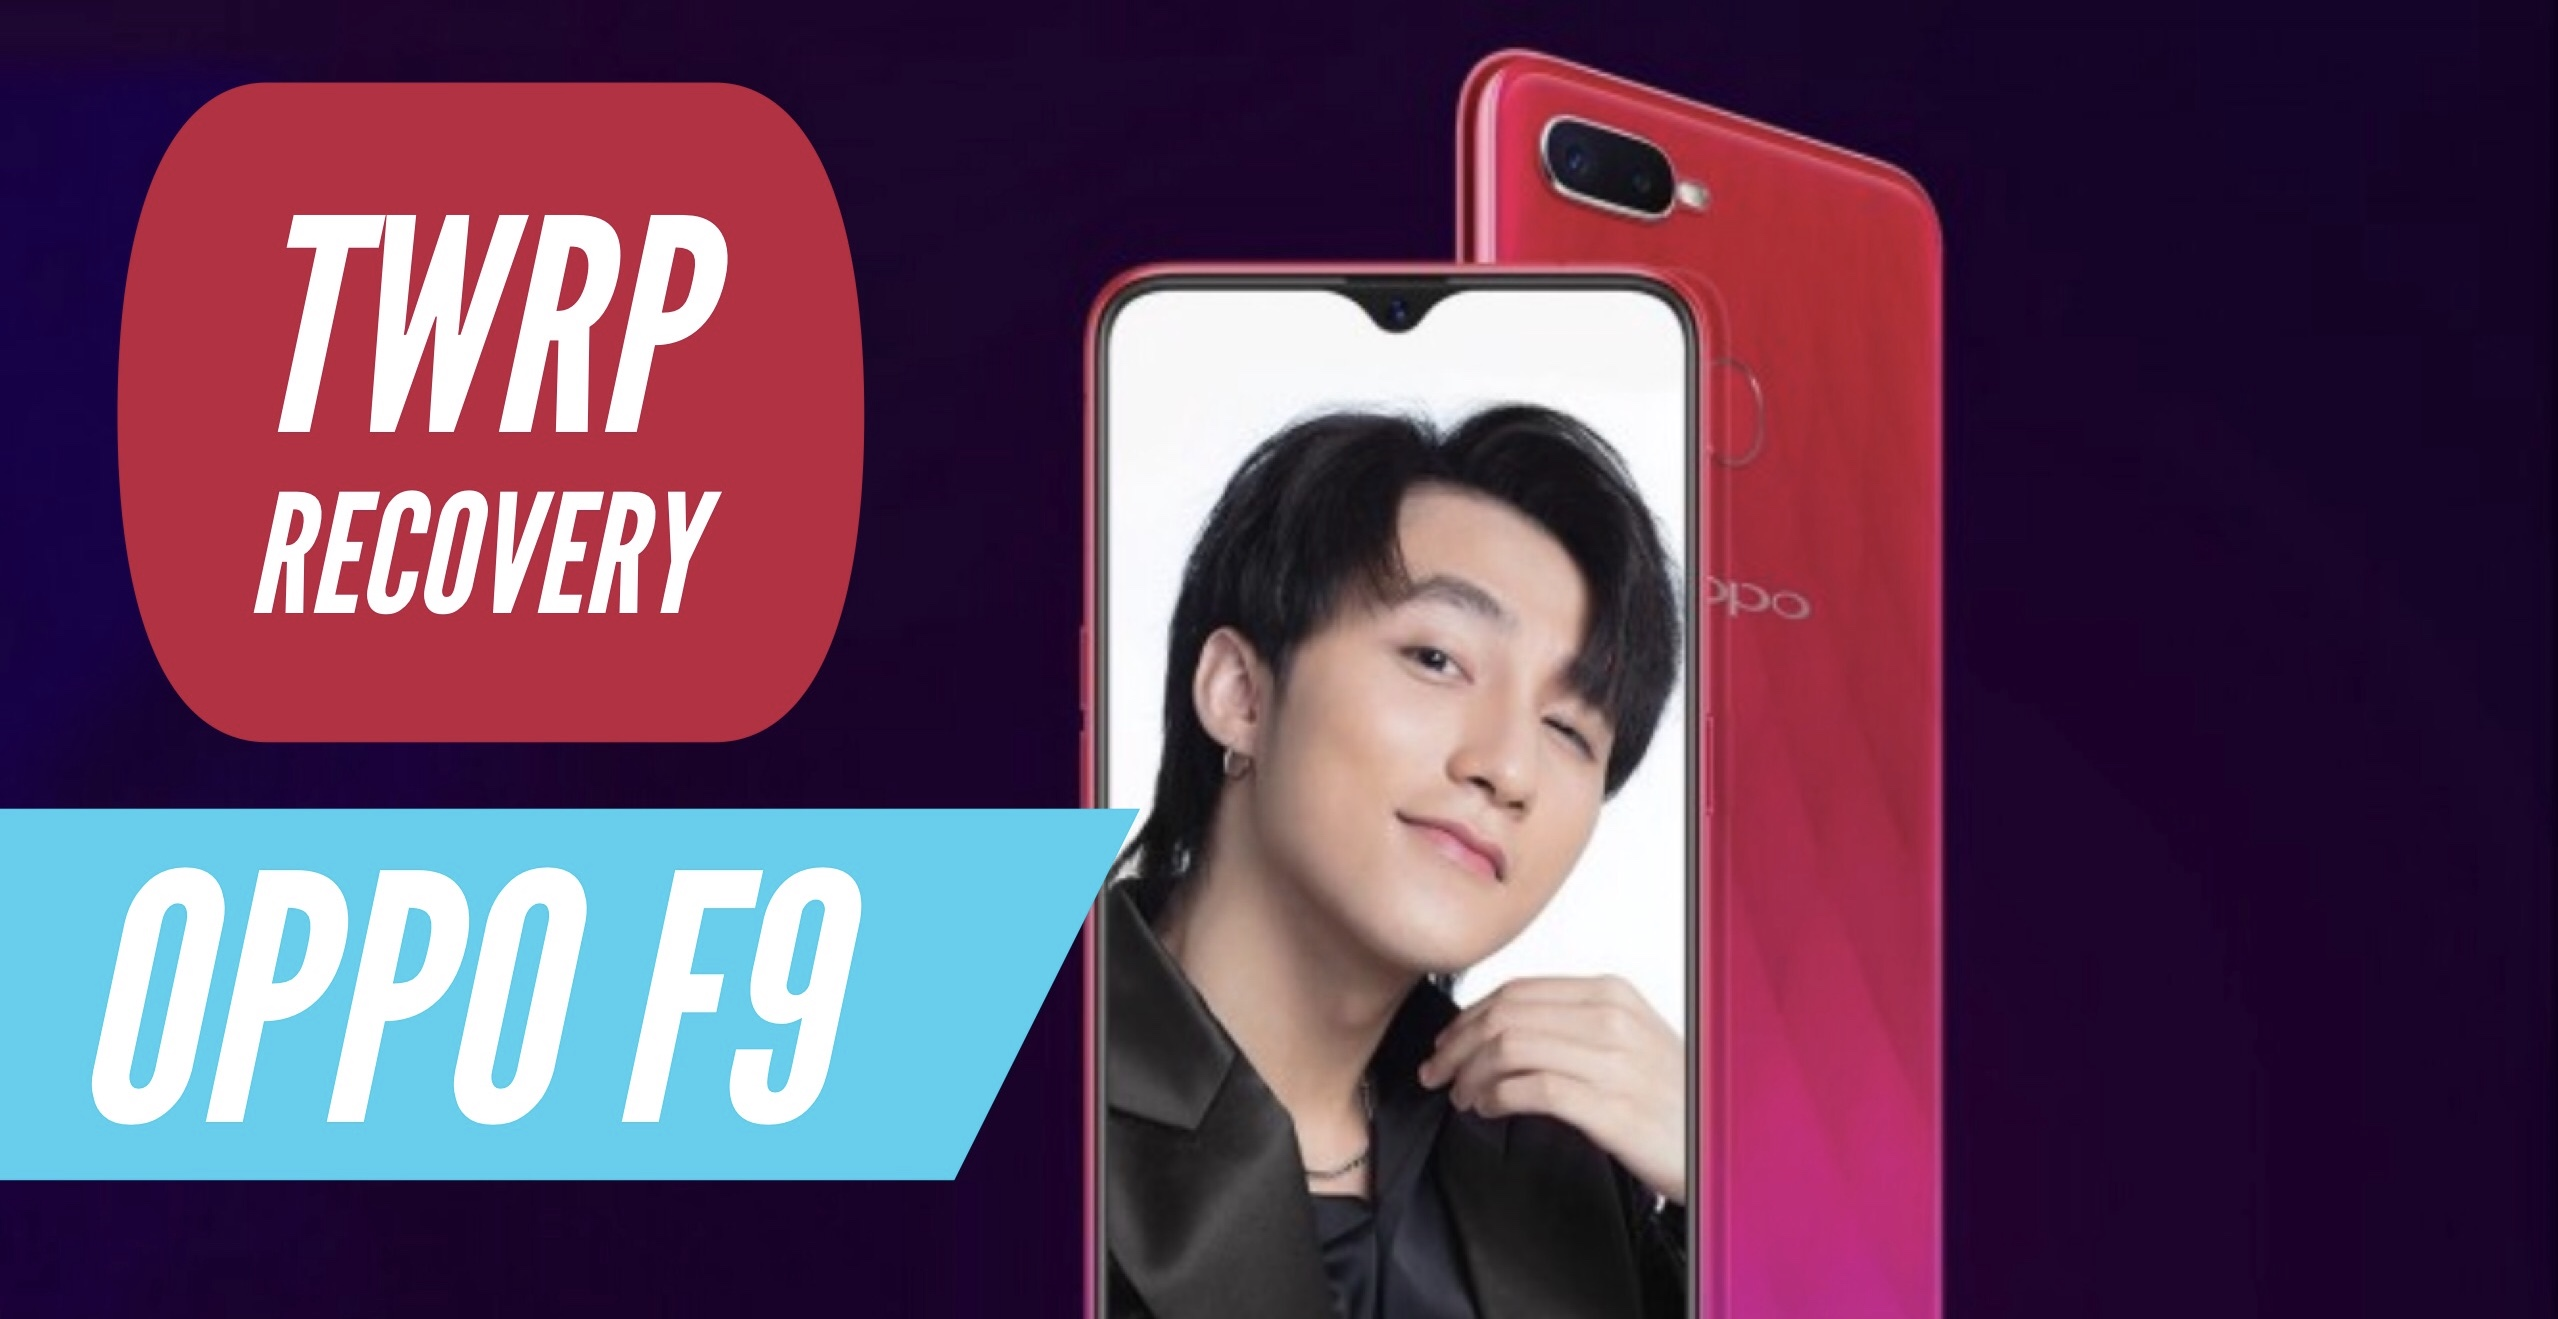 How to Install TWRP Recovery on OPPO F9 PRO? Step By Step GUIDE!